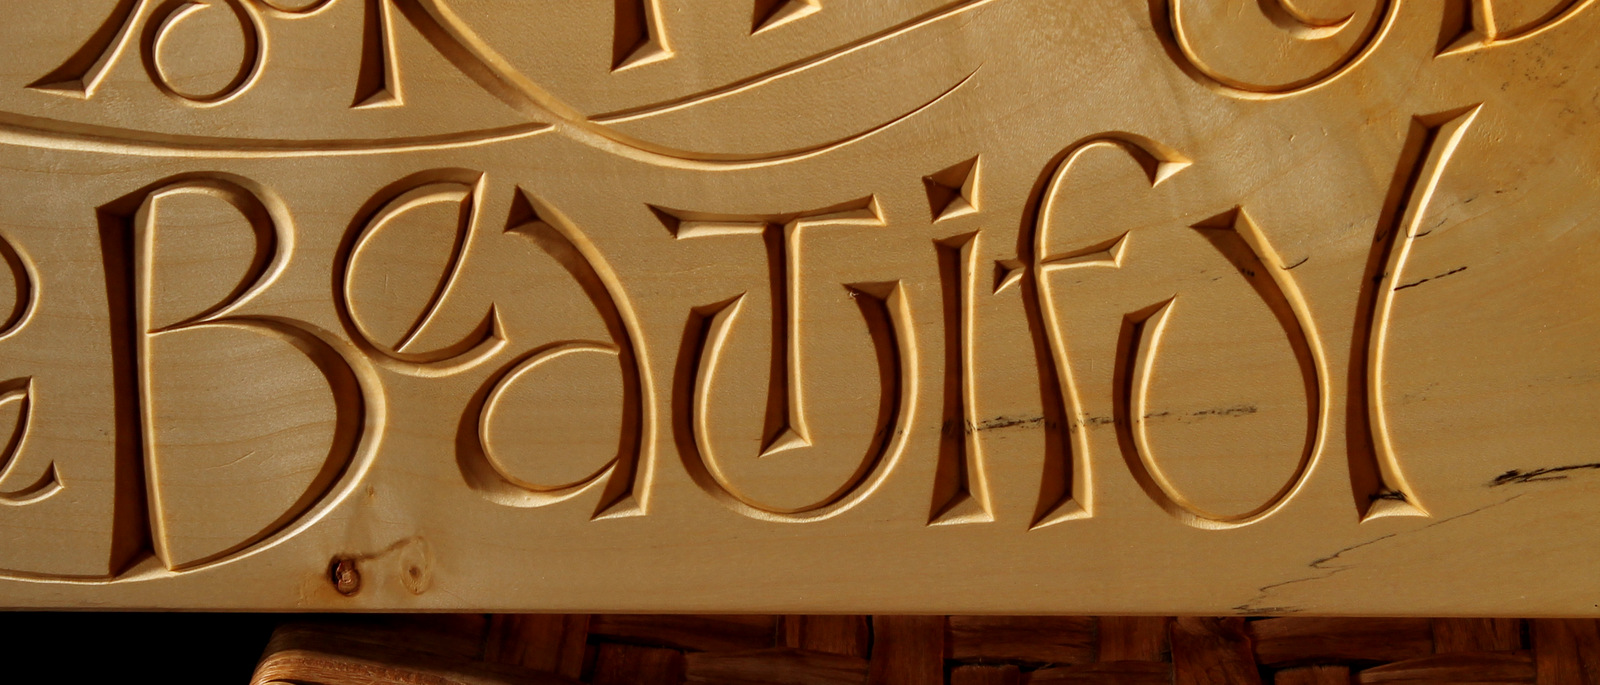 Learning From Lettering David Fisher Carving Explorations